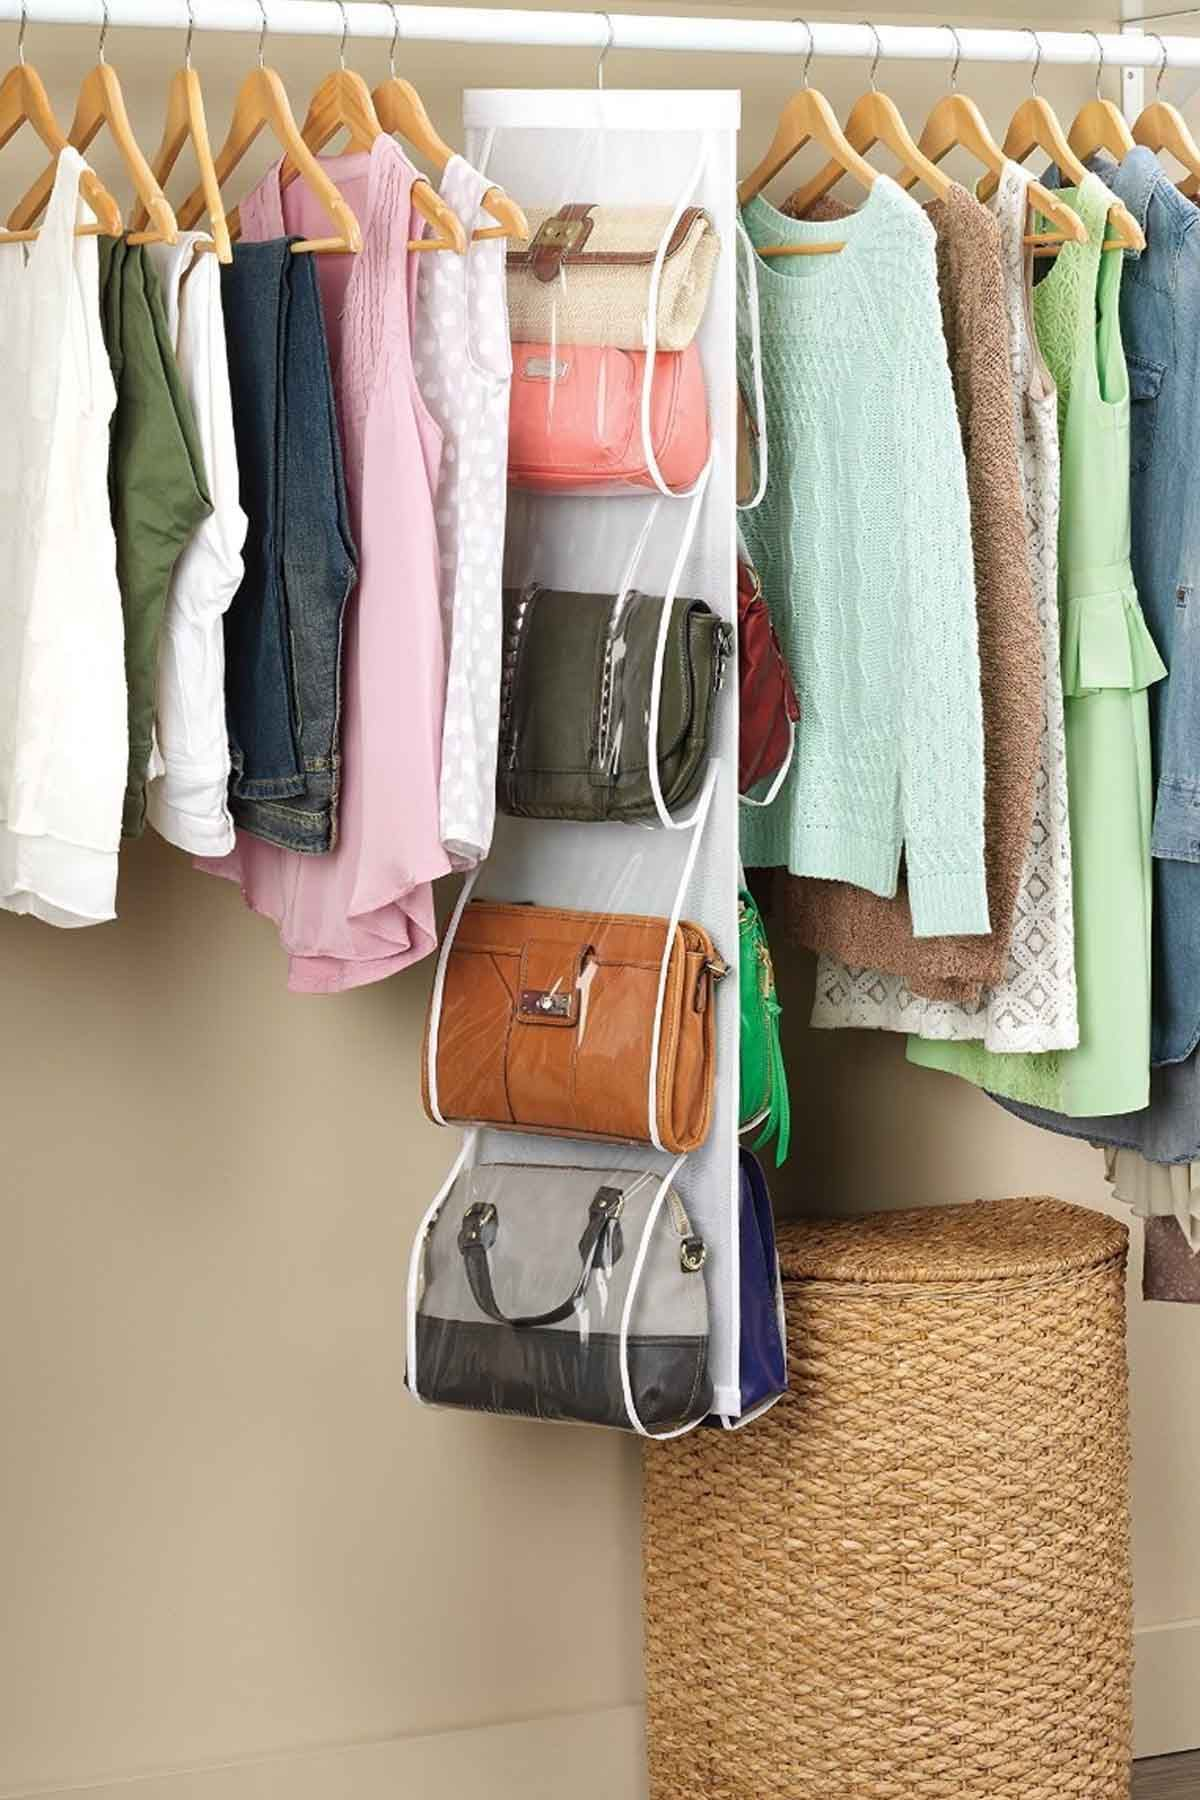 Clothes Closet Organization Ideas Part - 23: 24 Best Closet Organization U0026 Storage Ideas - How To Organize Your Closet -  WomansDay.com